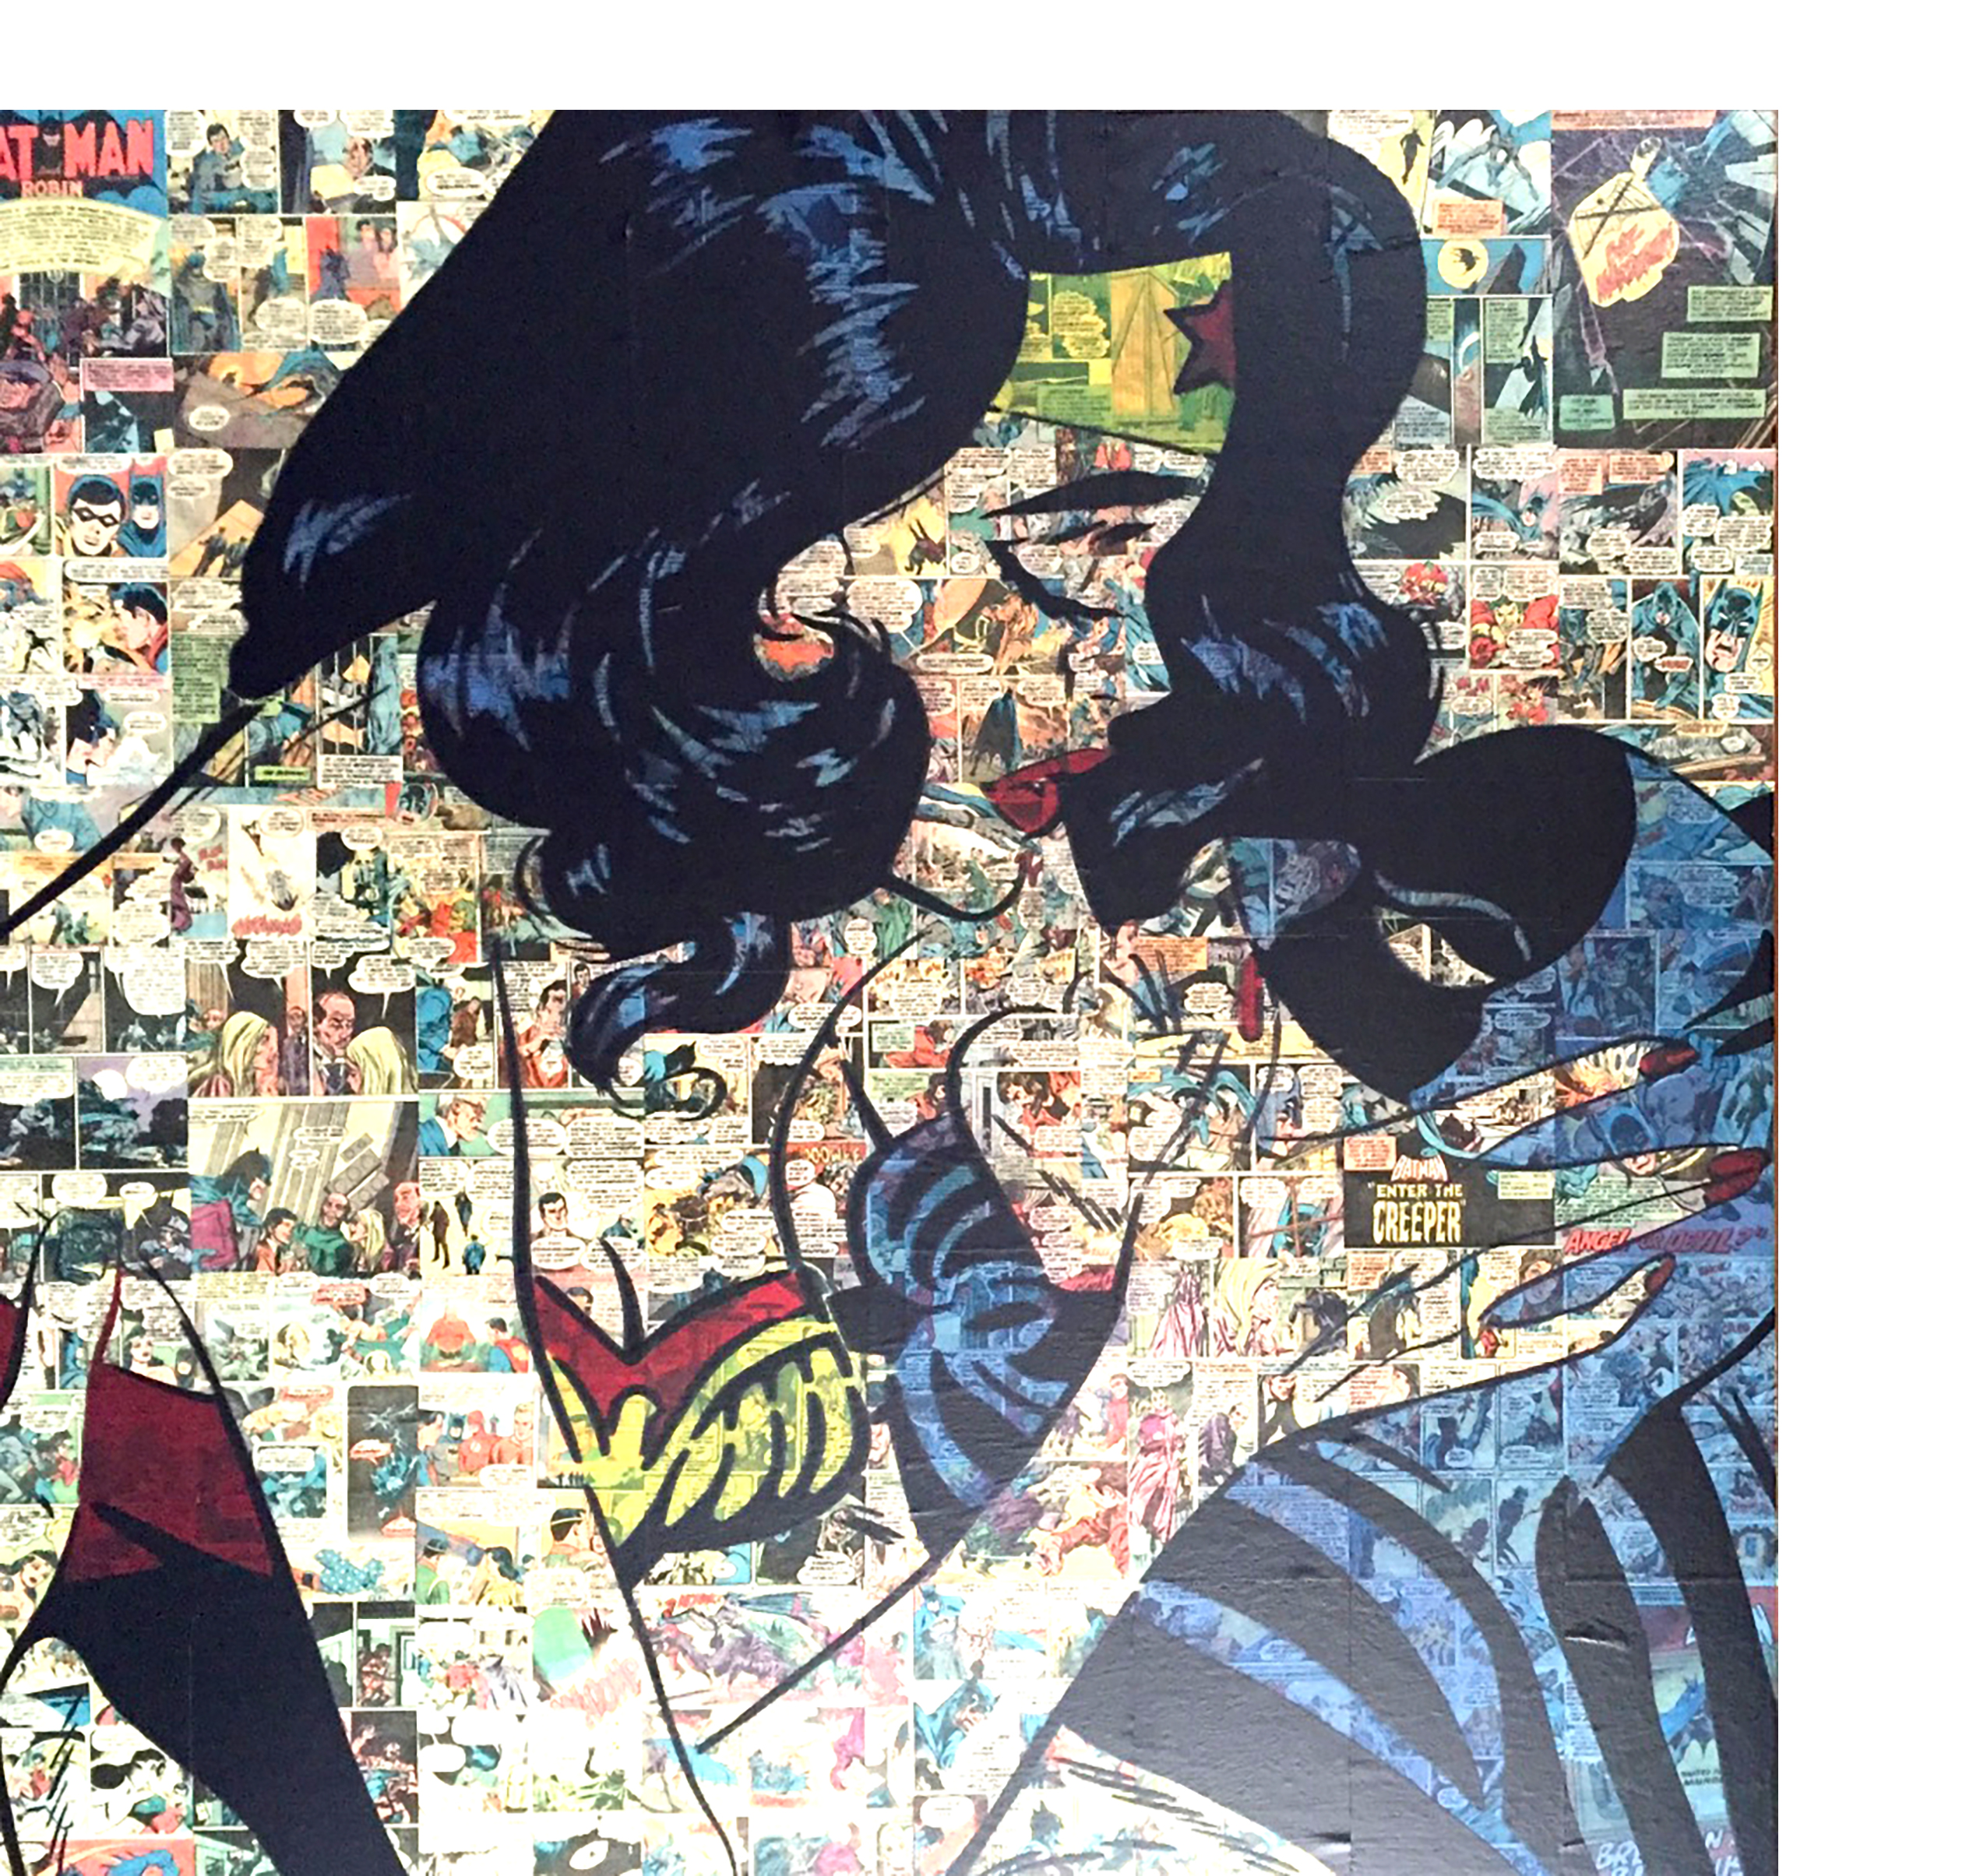 comic collage, diana eger, kunst, frankfurt, aufragskunst, portrait, batman, wonder woman, comic